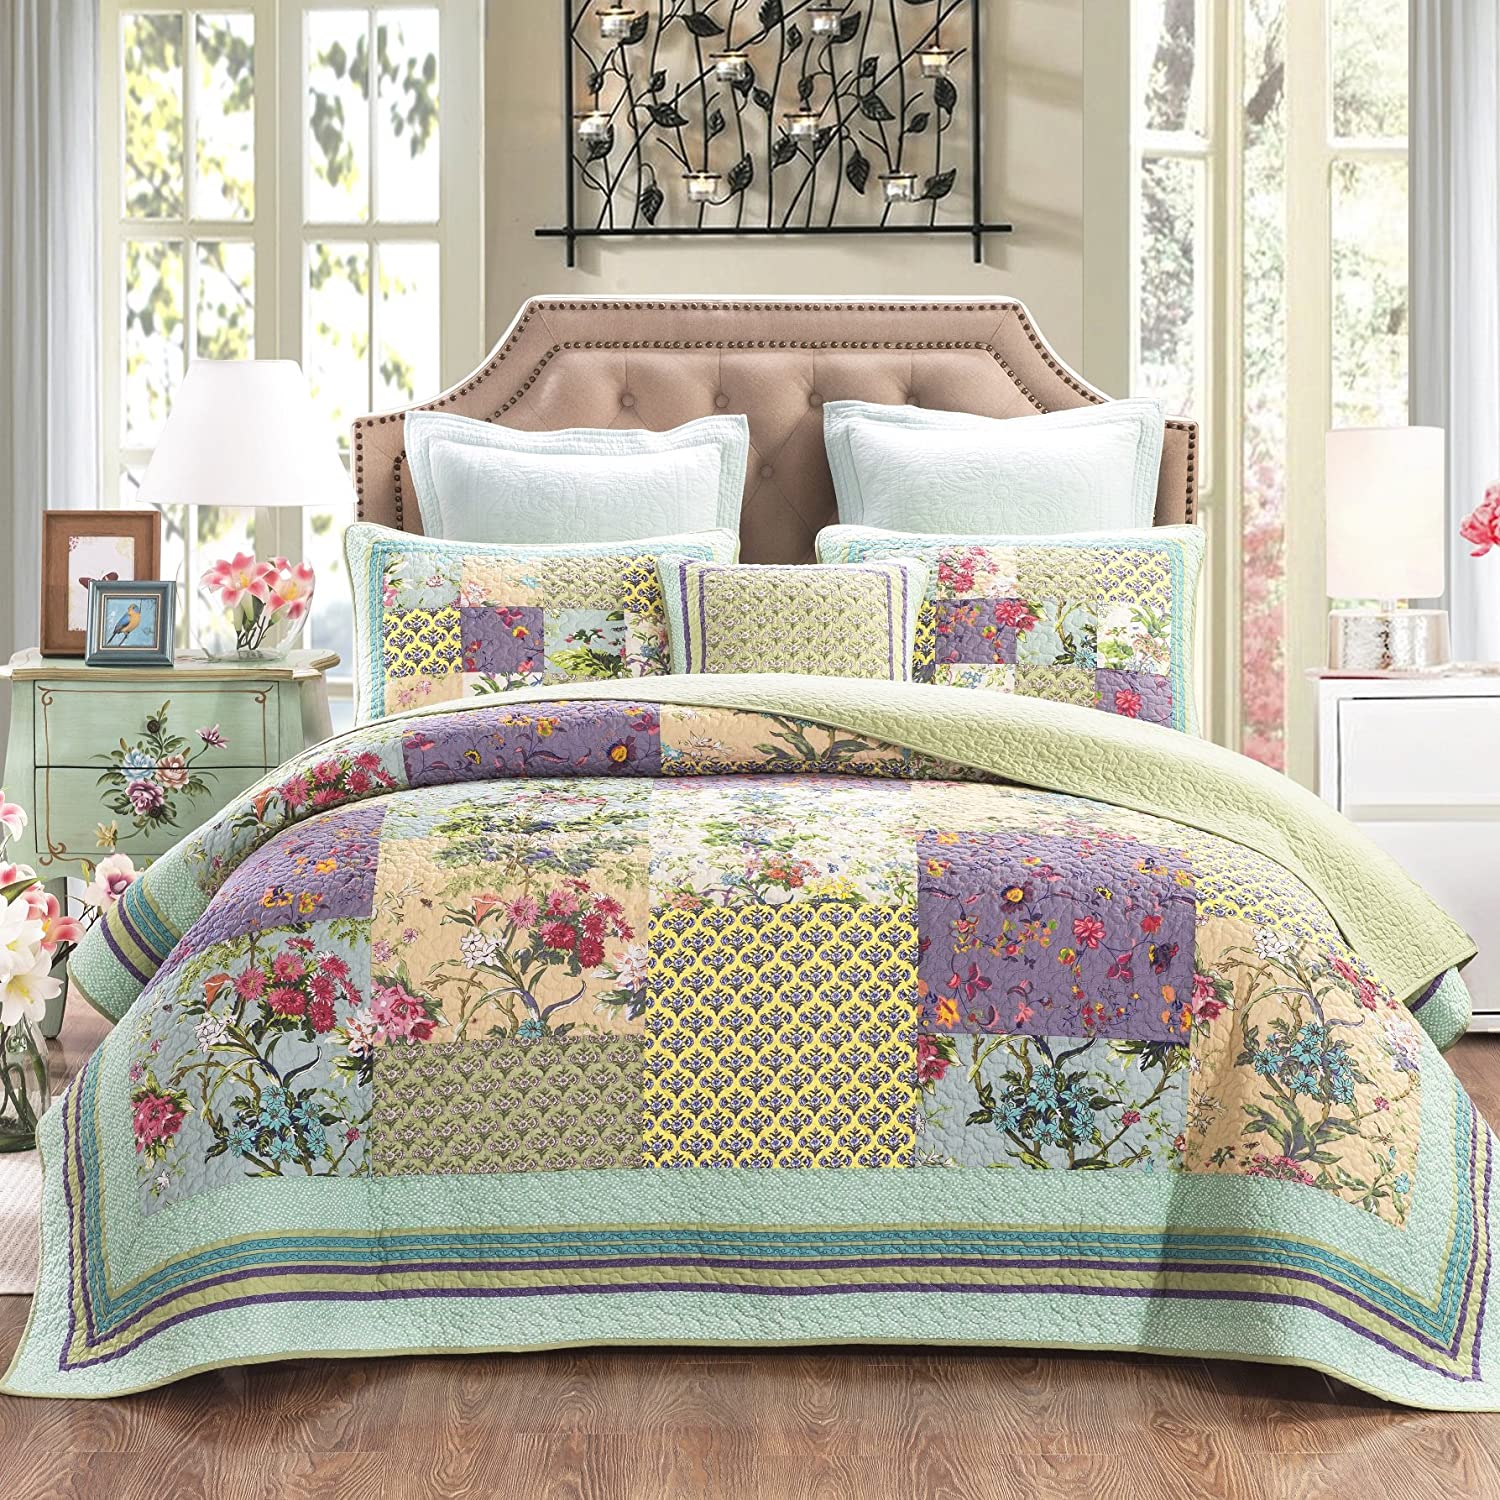 Victorian Bedding Collections – Ease Bedding with Style